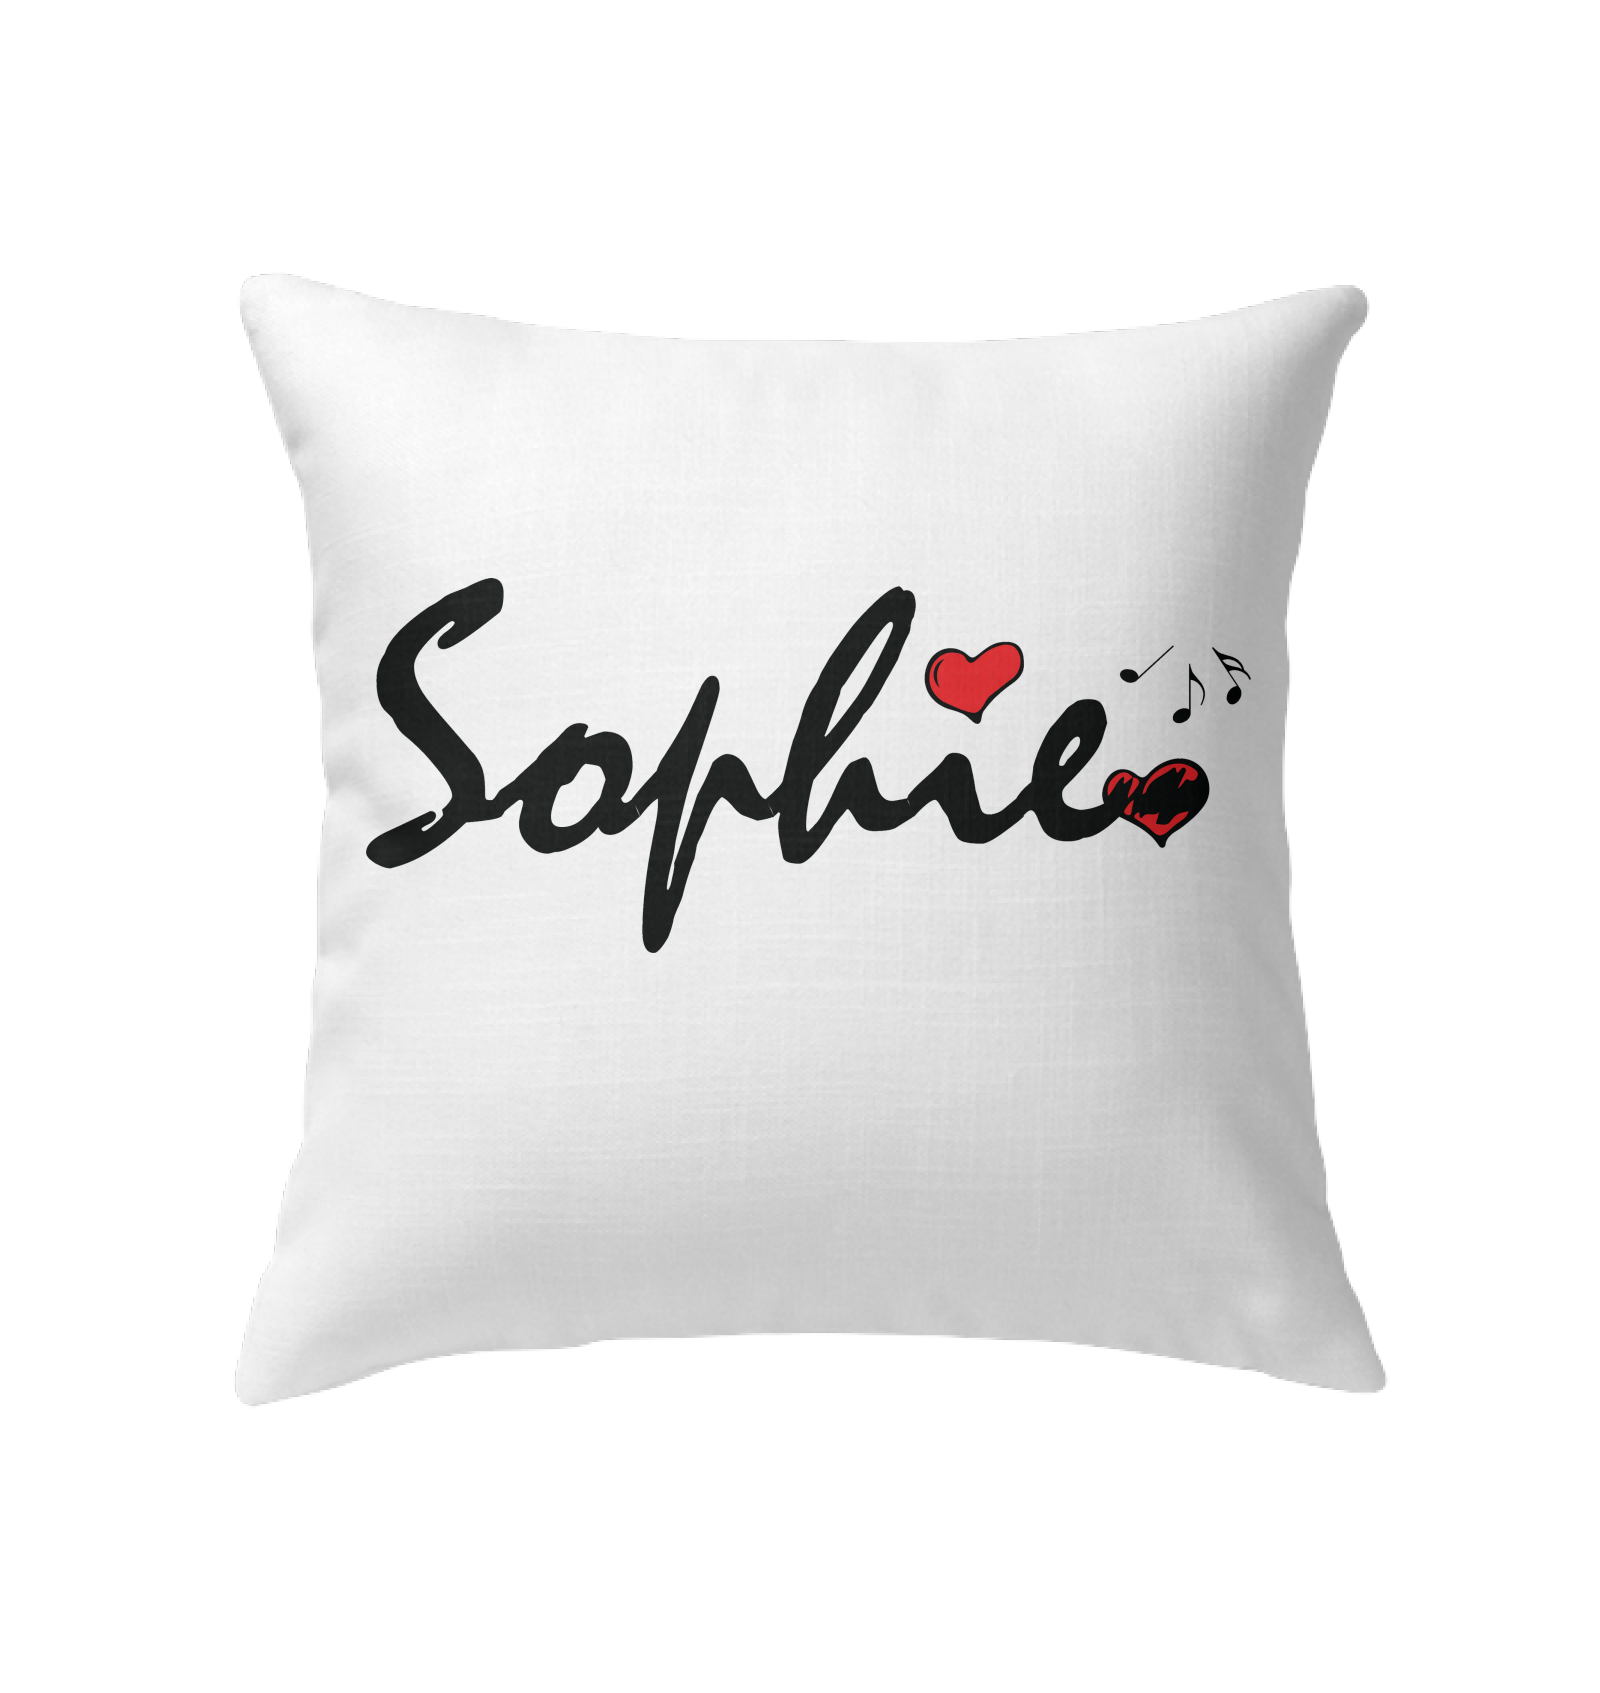 Sophie Loves Music - Indoor Pillow